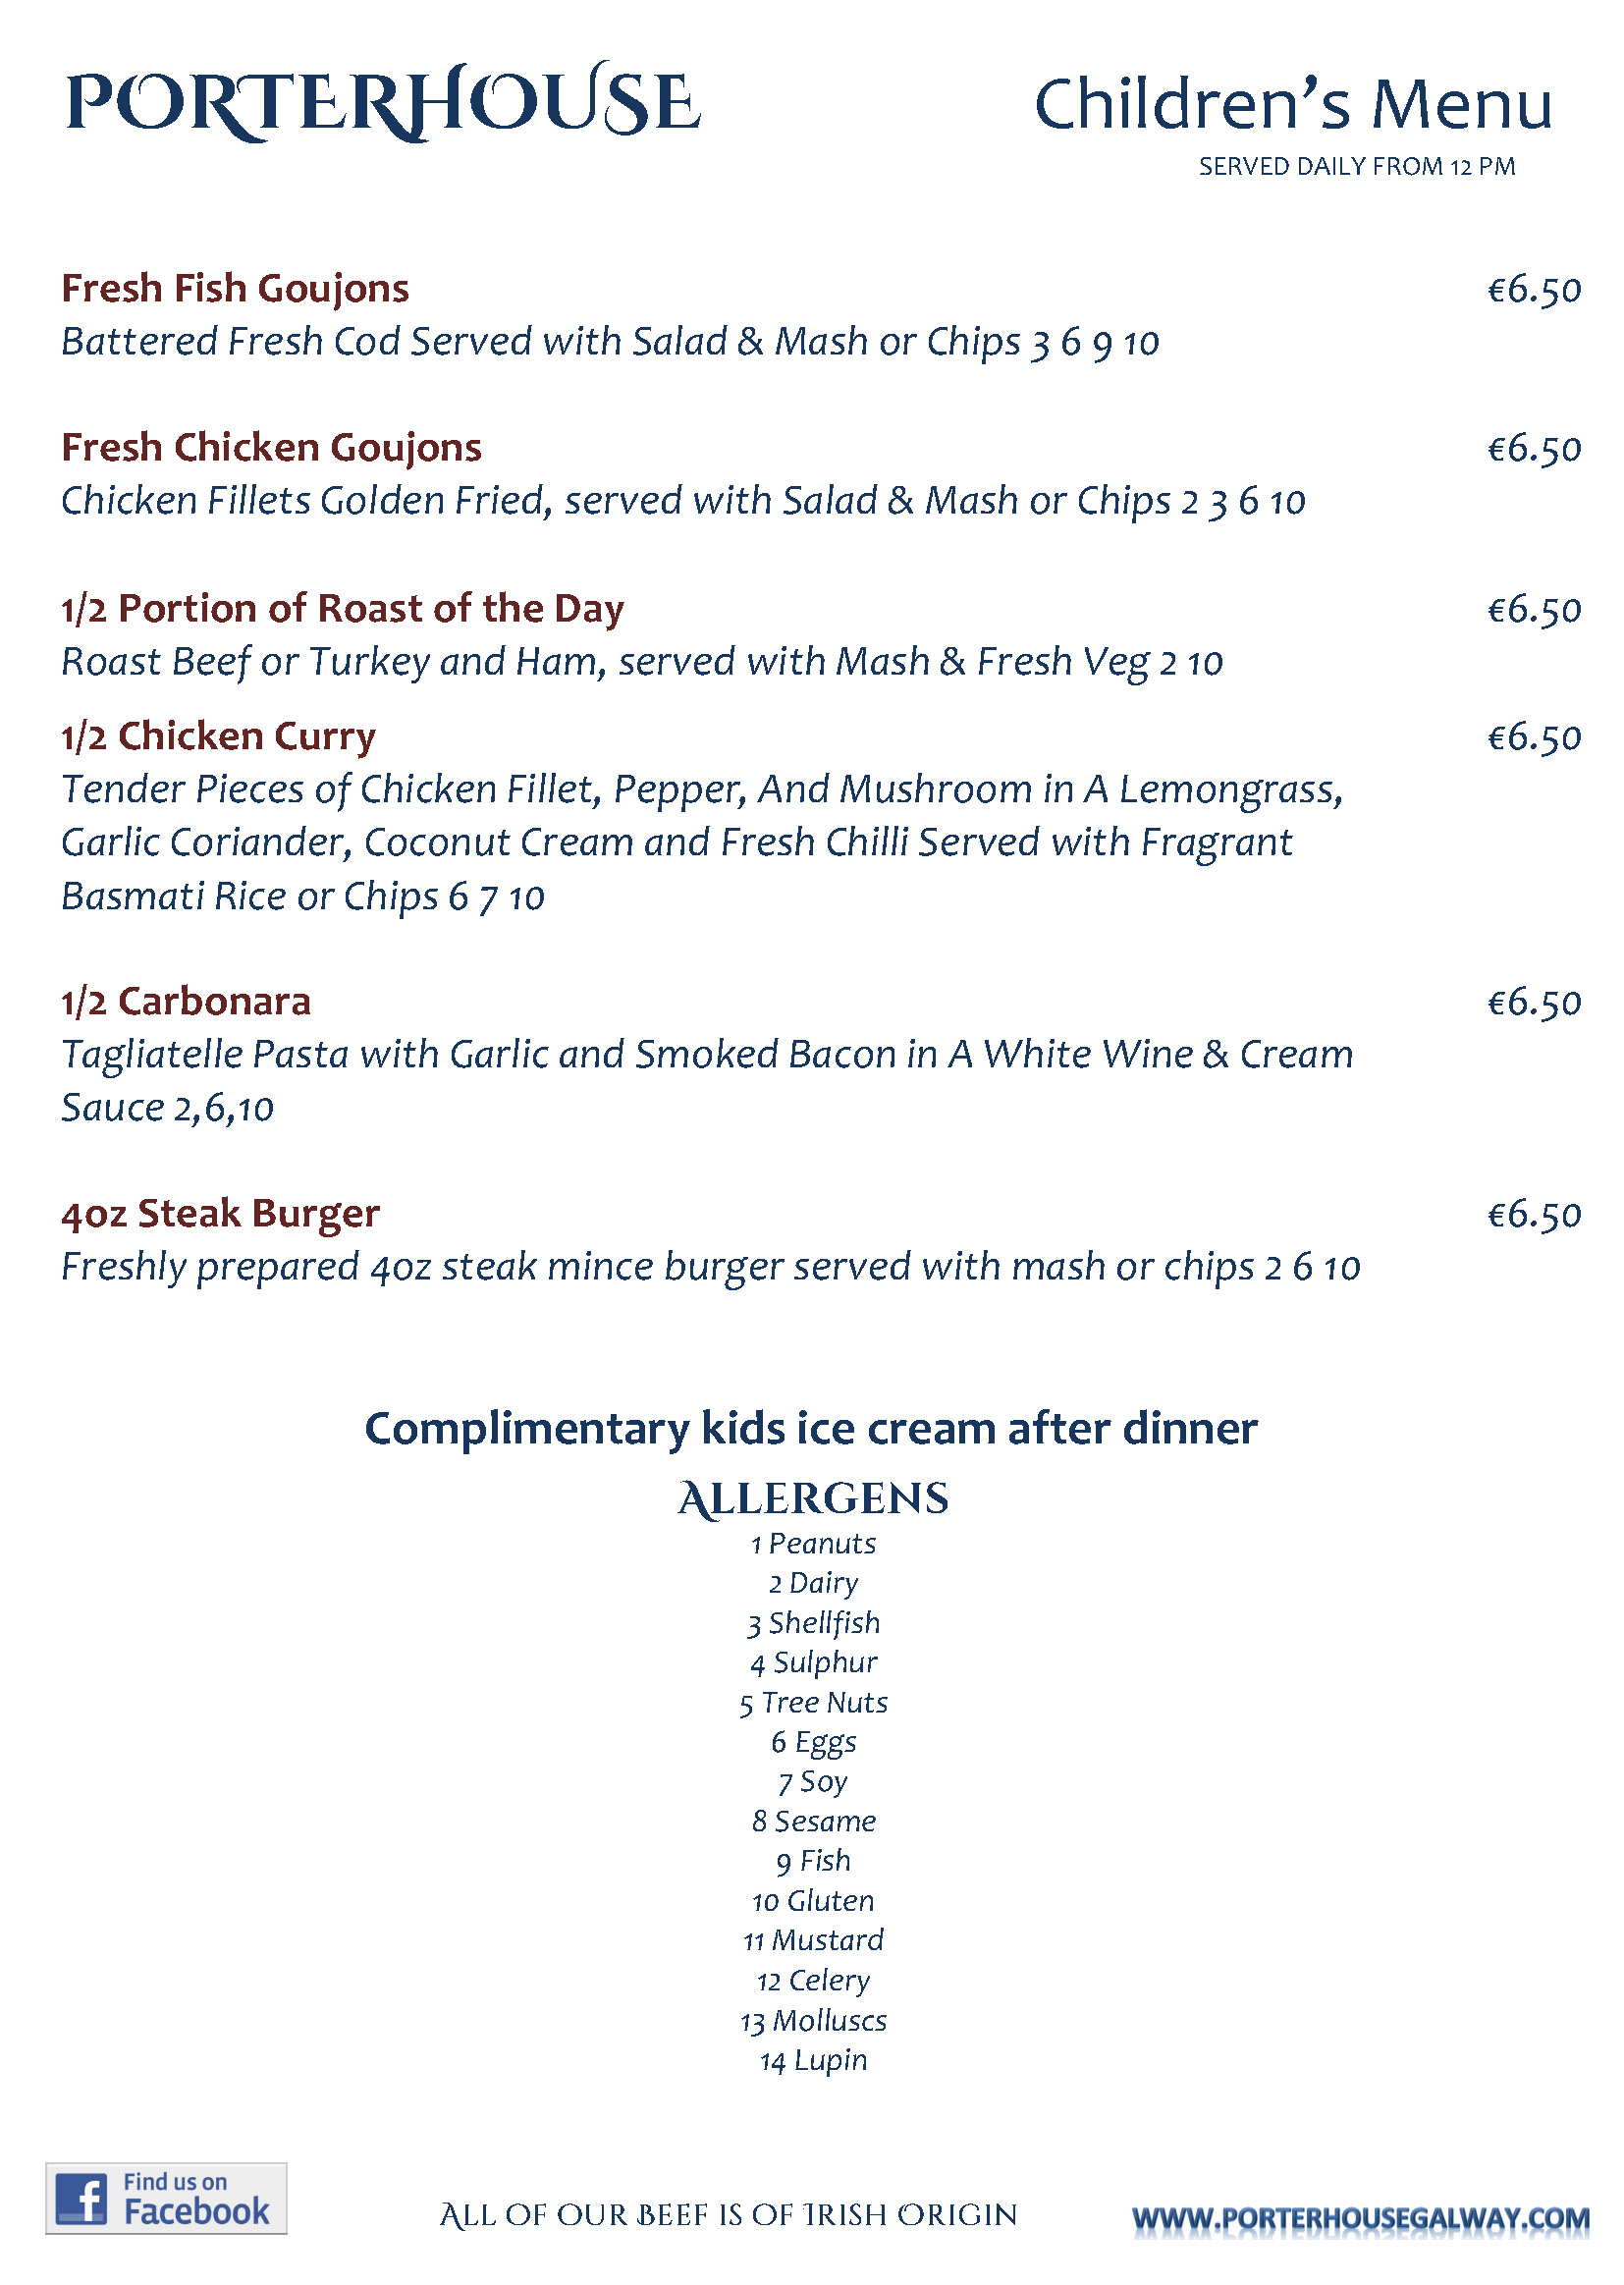 Porterhouse Galway - kids Menu - Final 19.07.2018.jpg